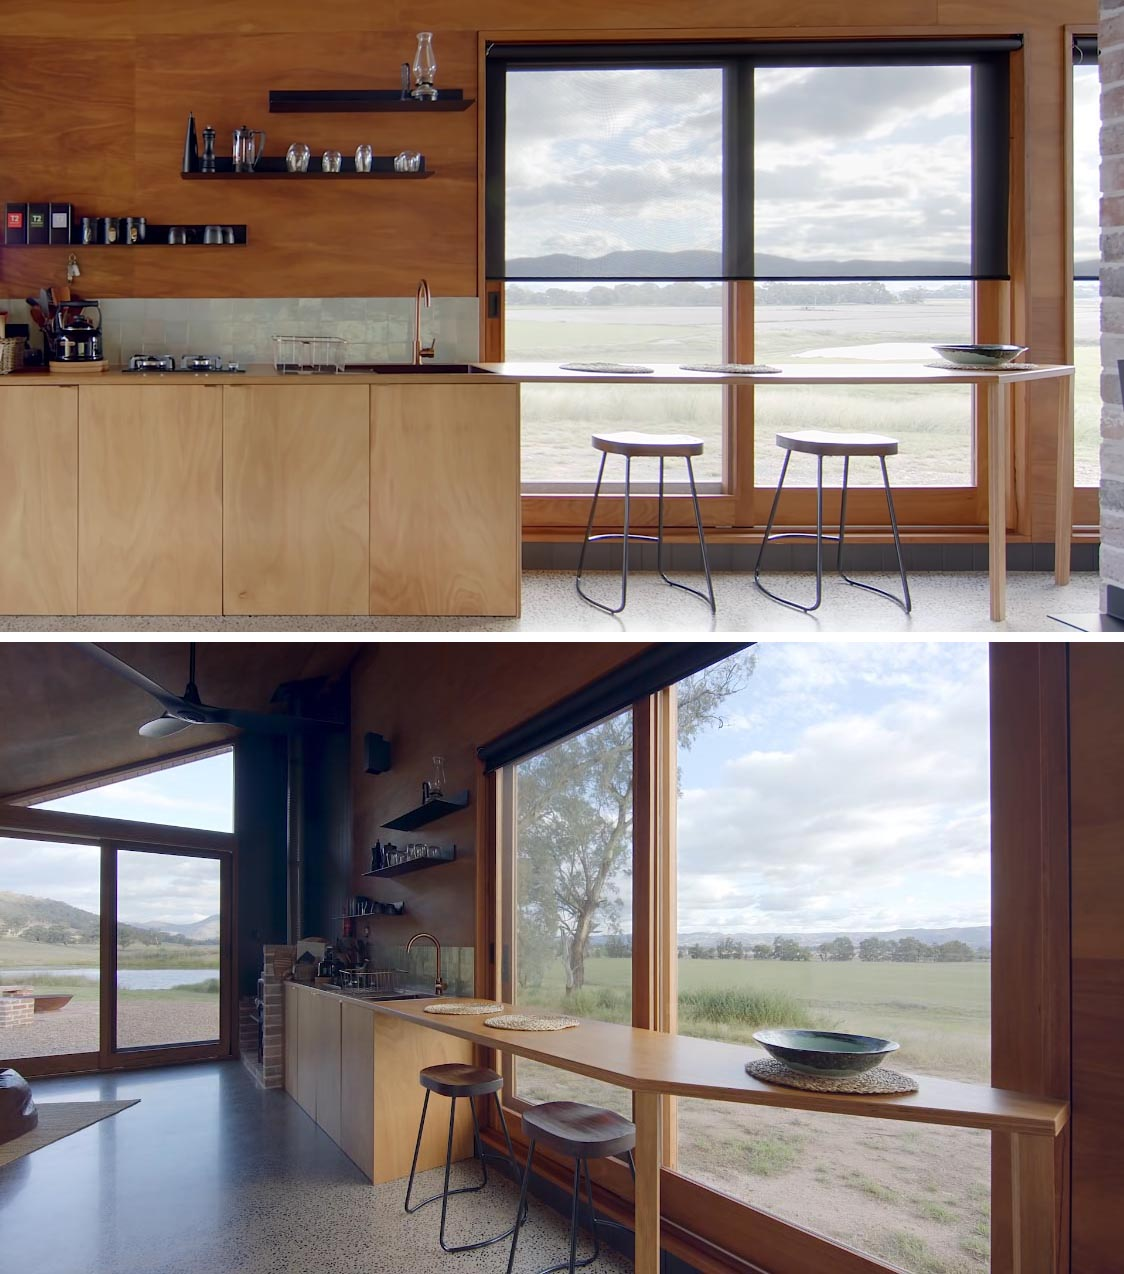 The kitchen countertop in this tiny house, extends past the windows and acts as a dining area or a workspace.